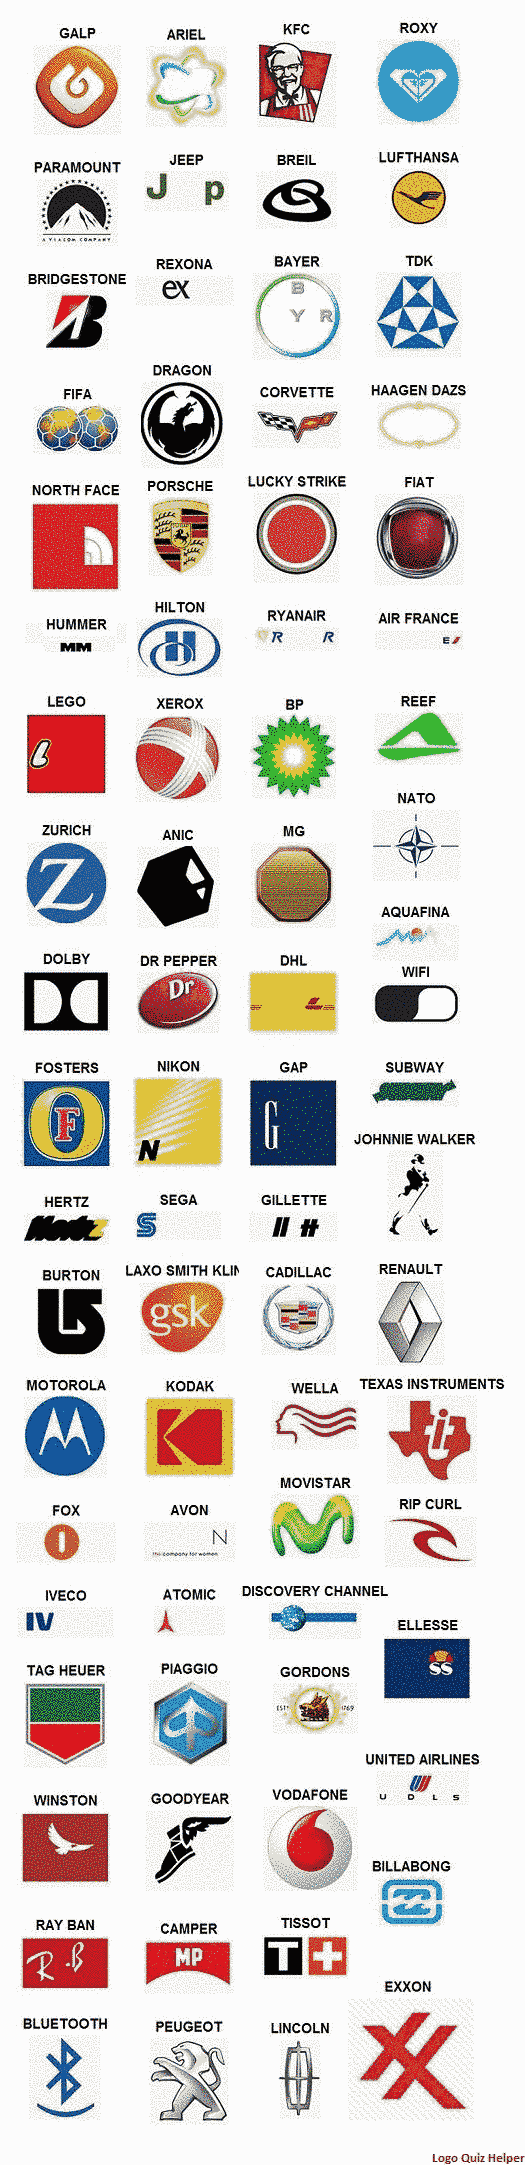 logo quiz answers level 4 Logos de marcas, Logotipos